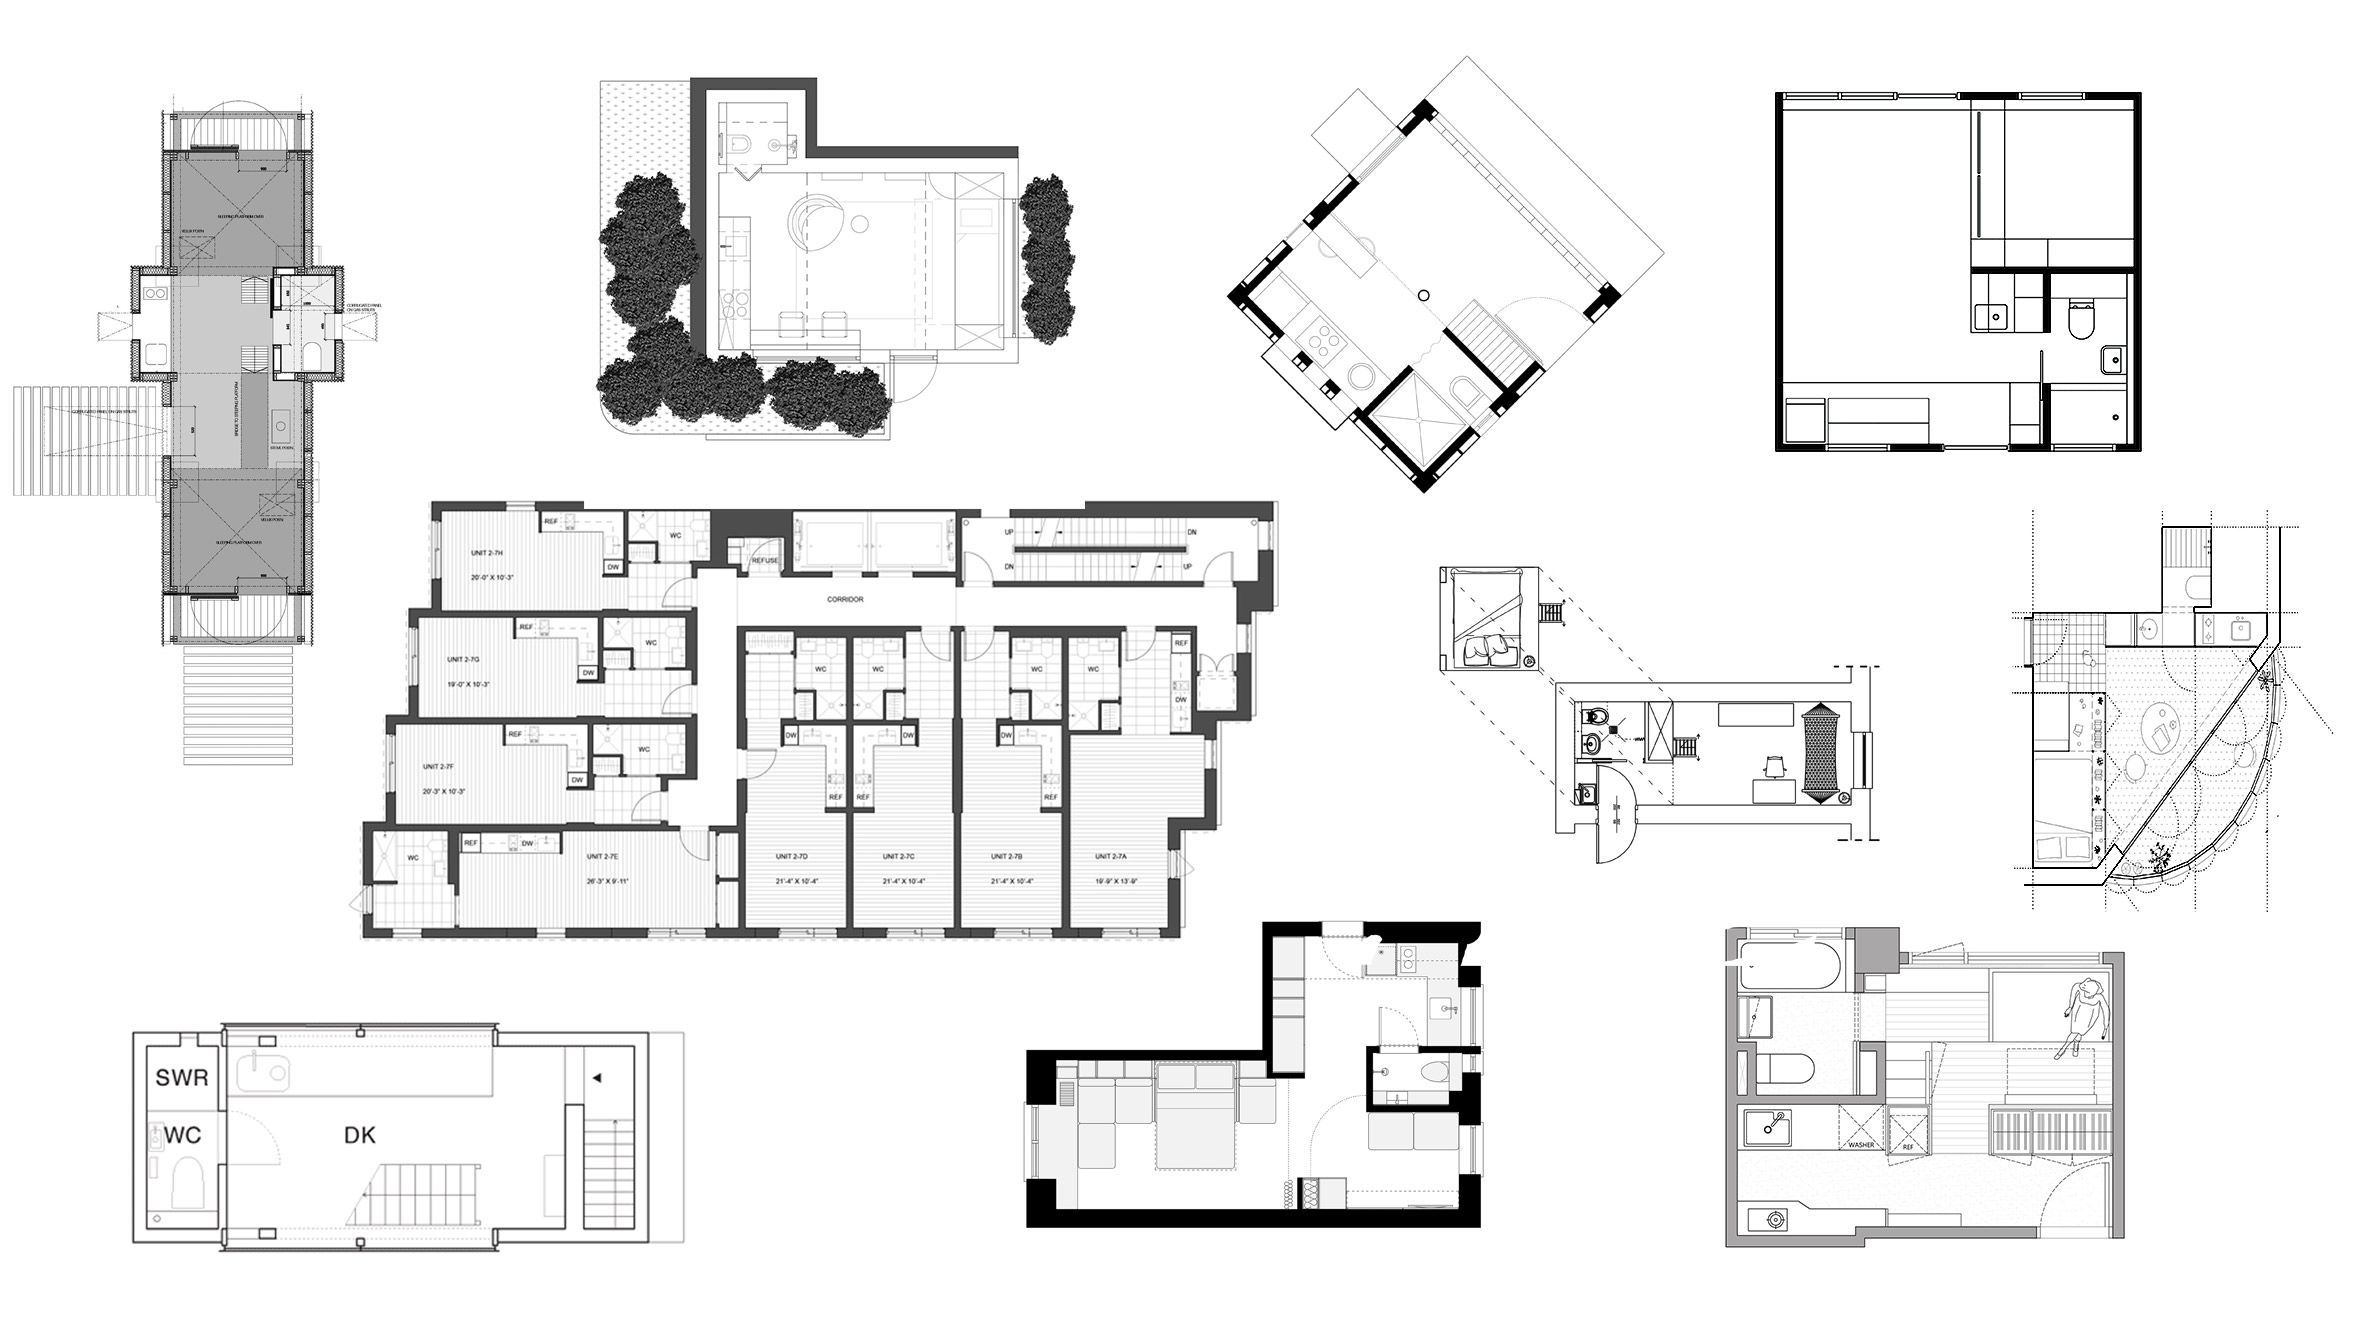 10 micro home floor plans designed to save space on townhouse elevations, townhouse blueprints, townhouse home plans with basement, townhouse community, townhouse plans for narrow lots, 2 car garage duplex plans, townhouse layout, townhouse renderings, townhouse drawings, townhouse rentals, townhouse construction, townhouse deck plans, townhouse luxury interior, garage apartment plans, townhouse design, townhouse master plan,